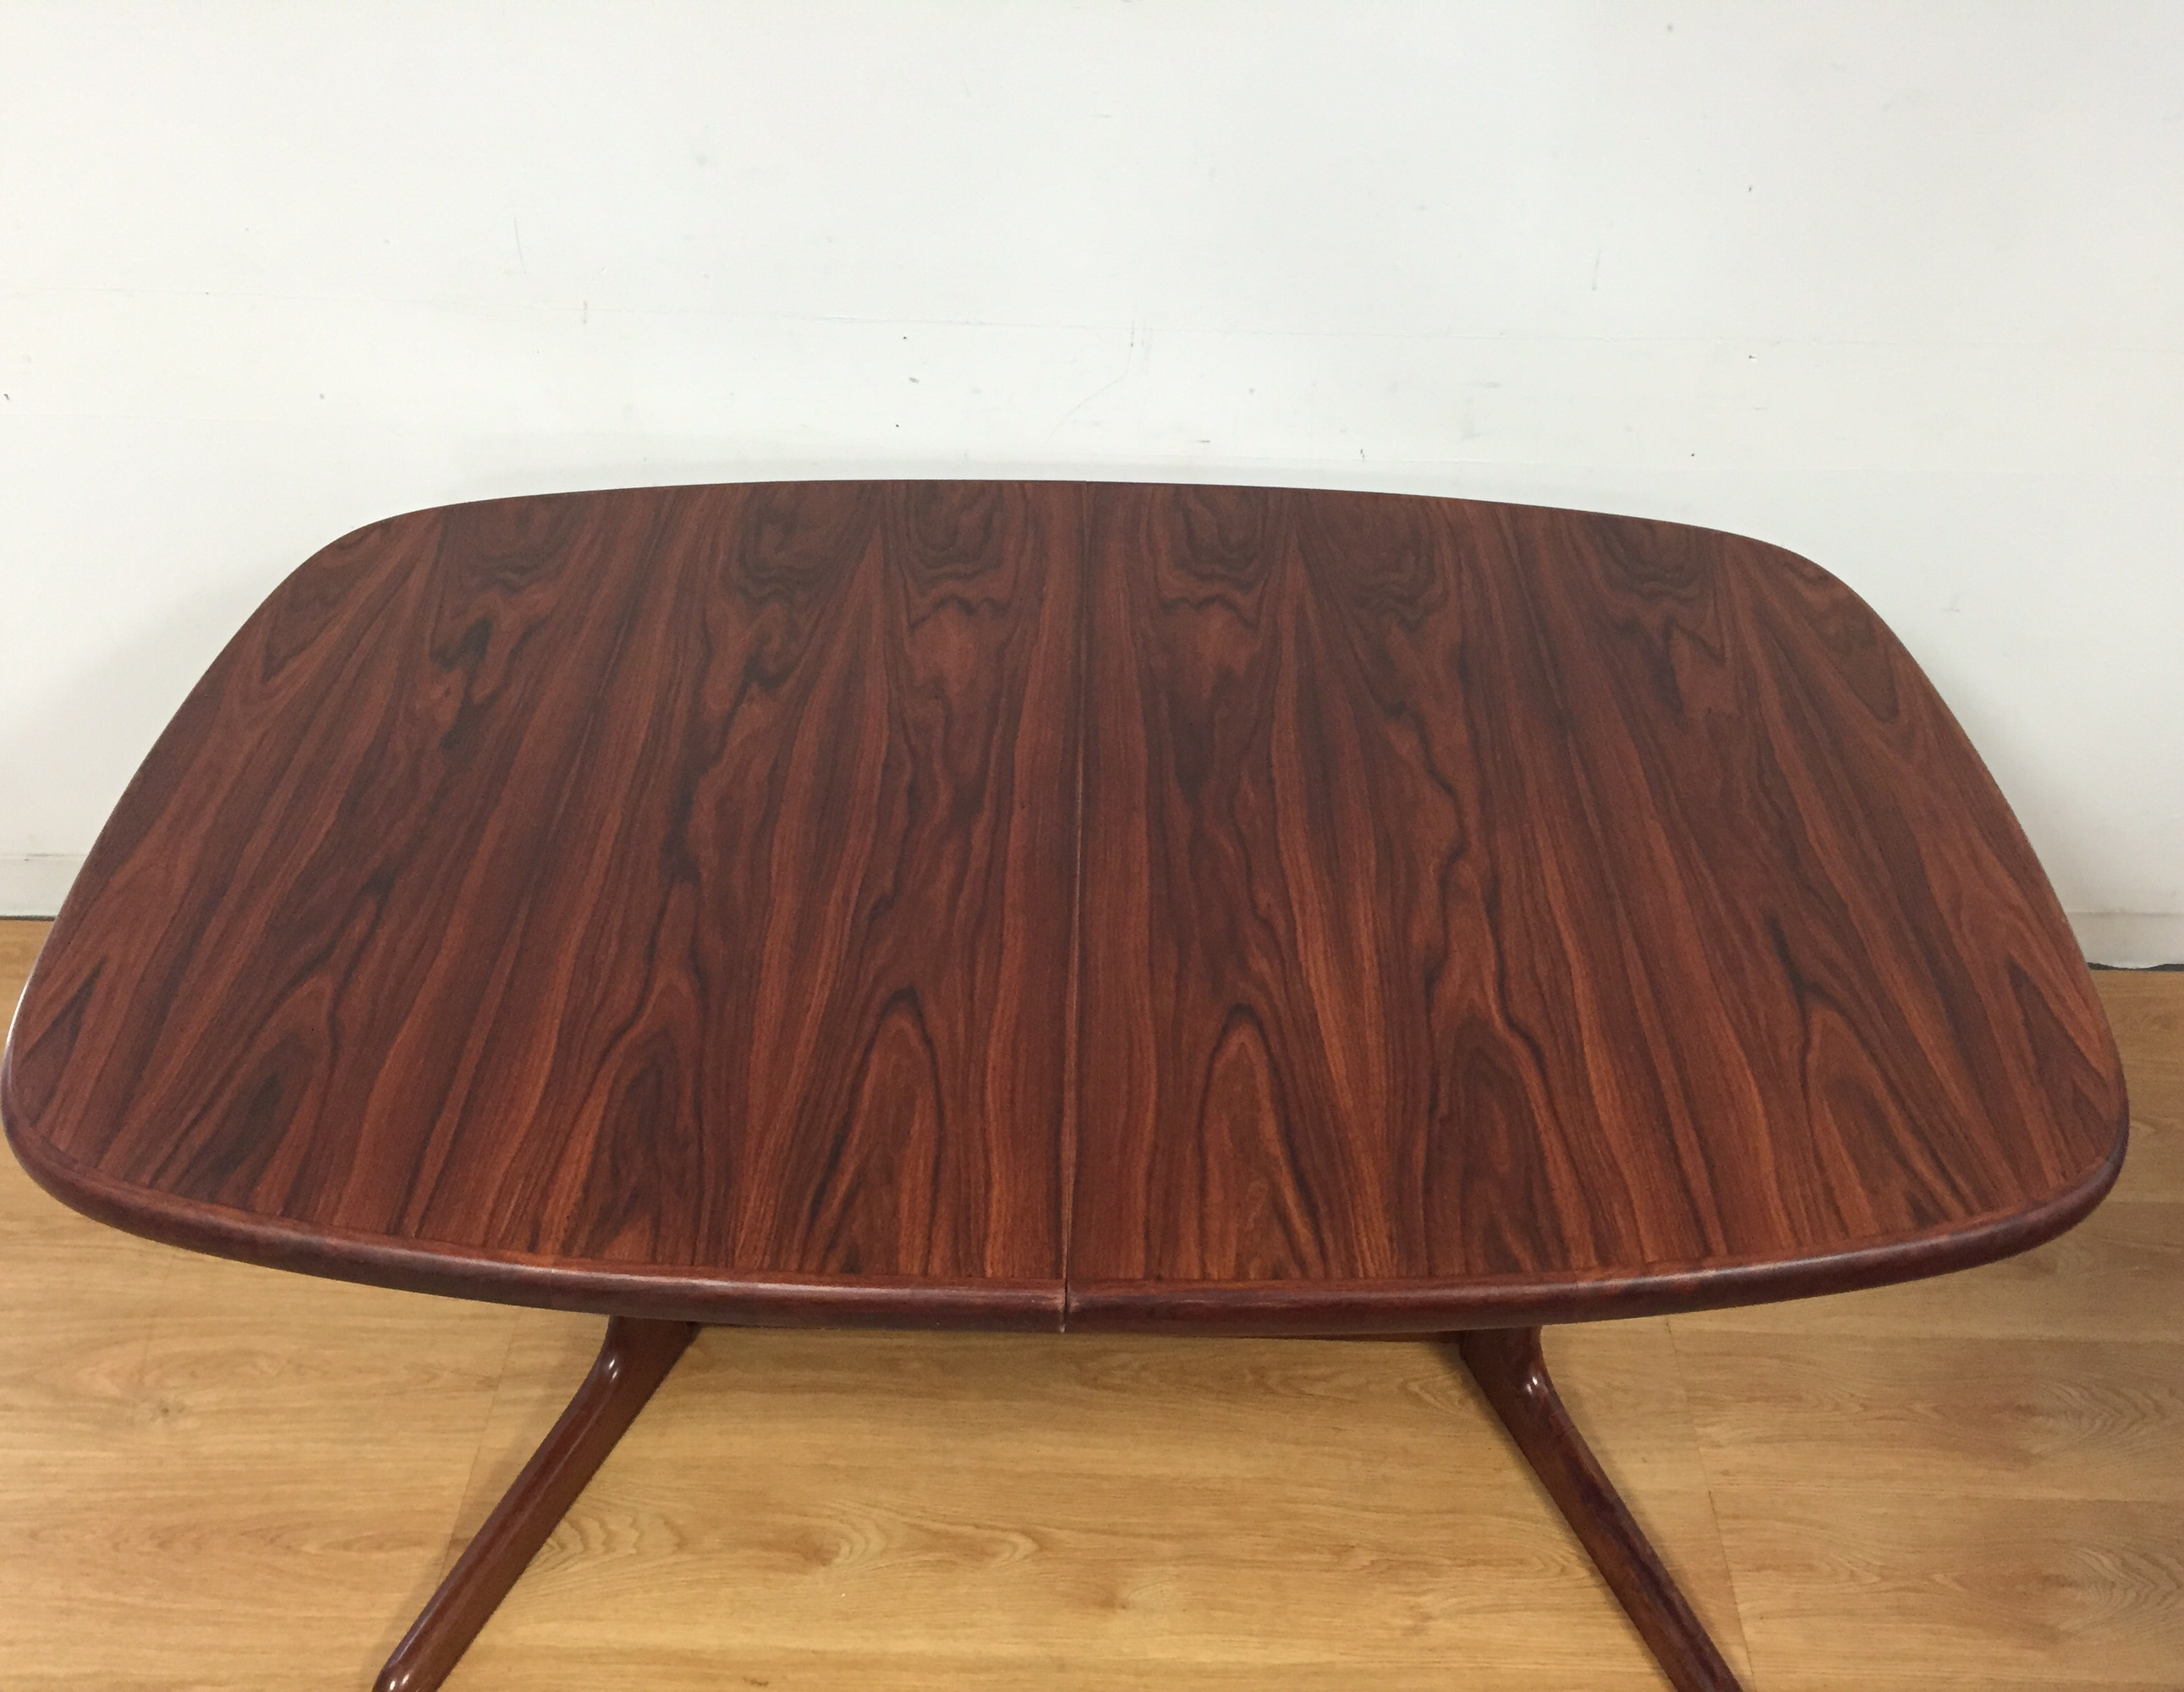 Rosewood Danish Dining Table by Rasmus Chairish : 9ab9c95e e89e 4de9 b943 f91c0279c0c2aspectfitampwidth640ampheight640 from www.chairish.com size 640 x 640 jpeg 33kB